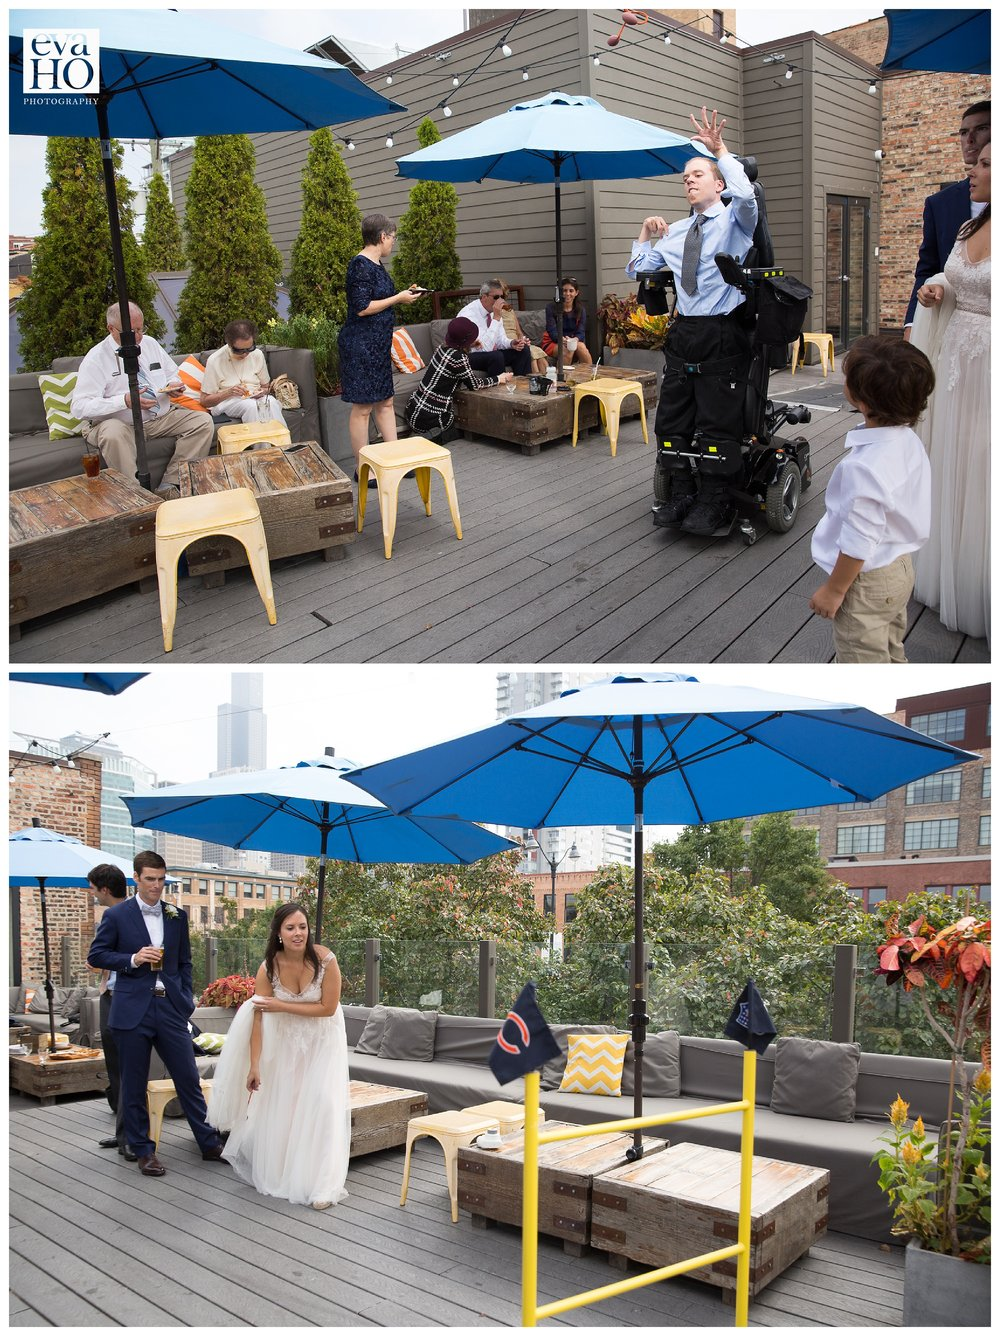 The yard games at the reception were so fun! Everyone was having a blast, super relaxed and carefree!